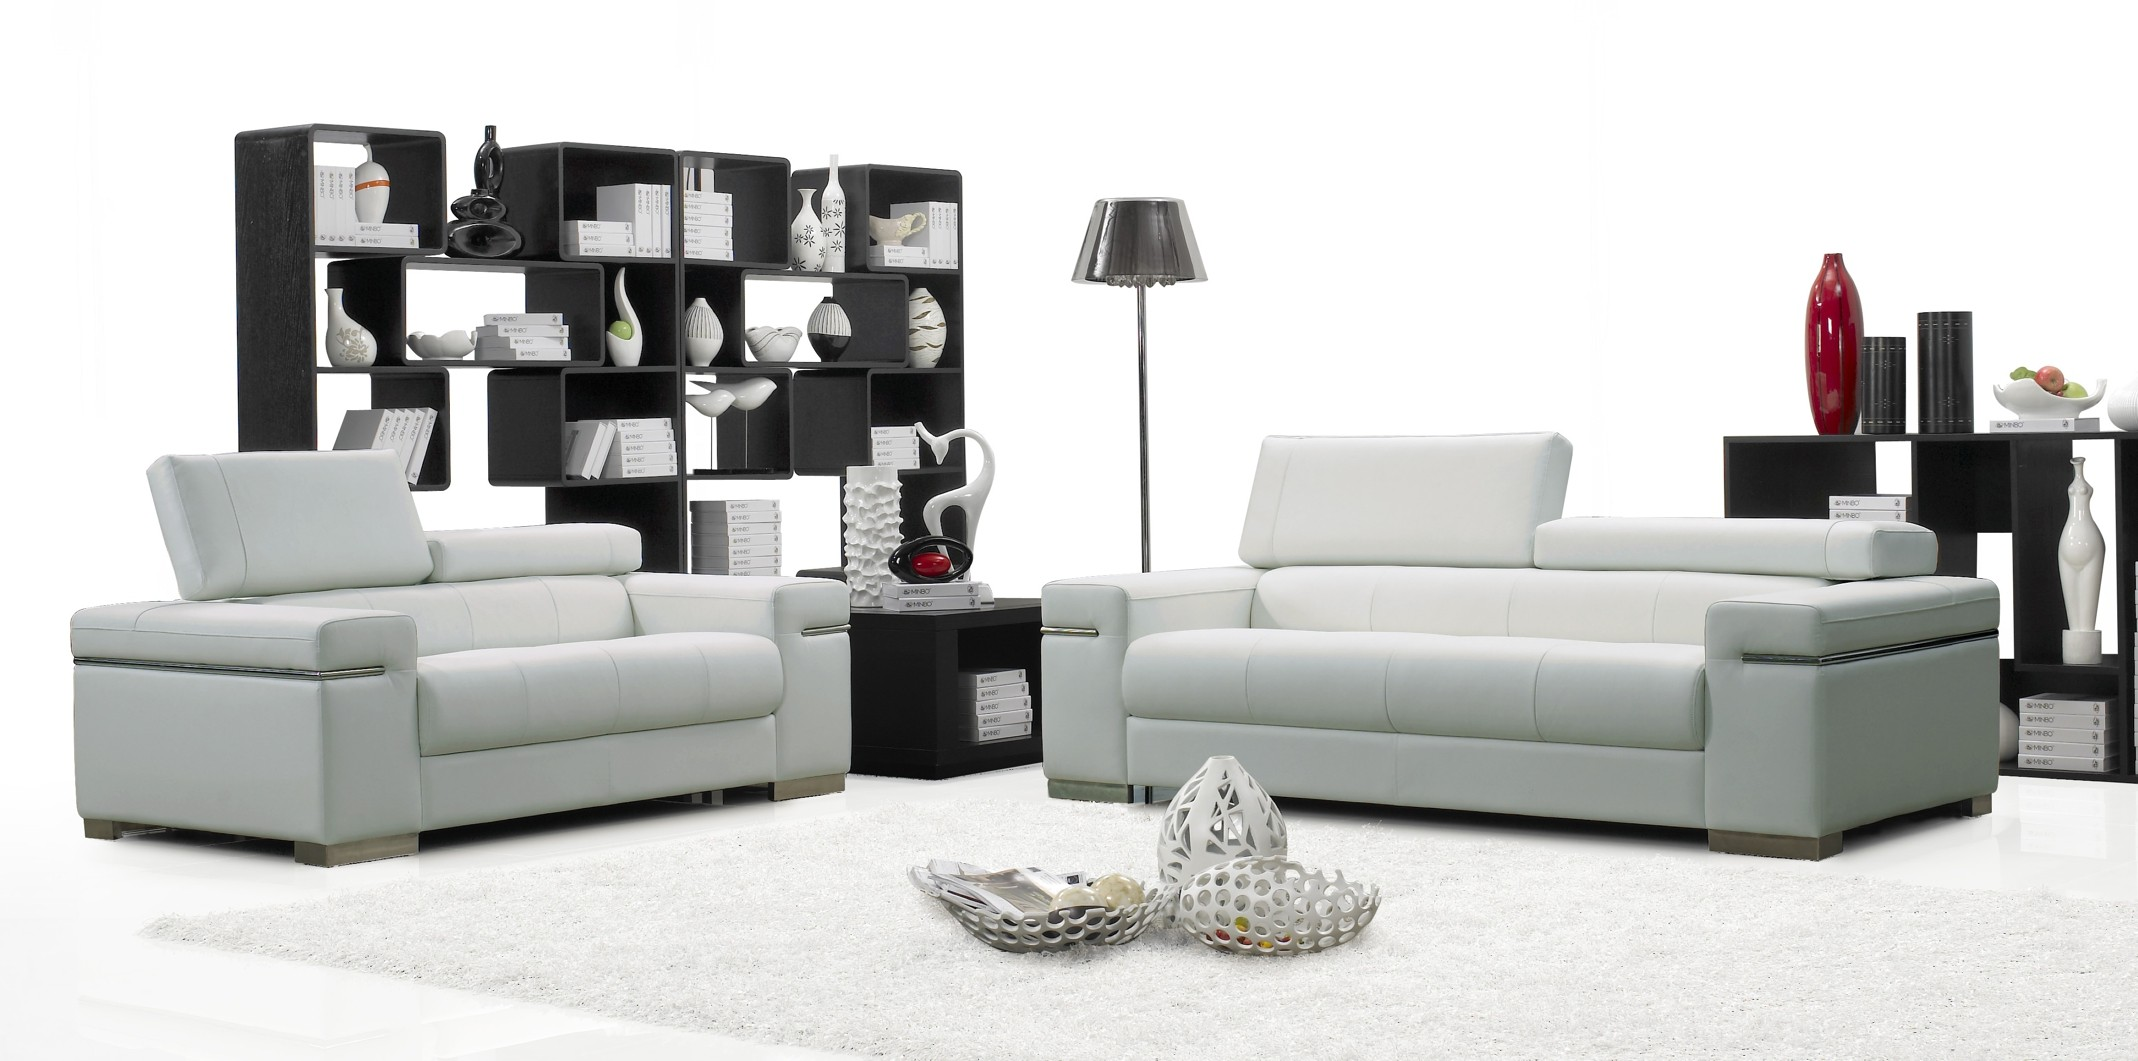 True modern furniture online homesfeed for Home furniture